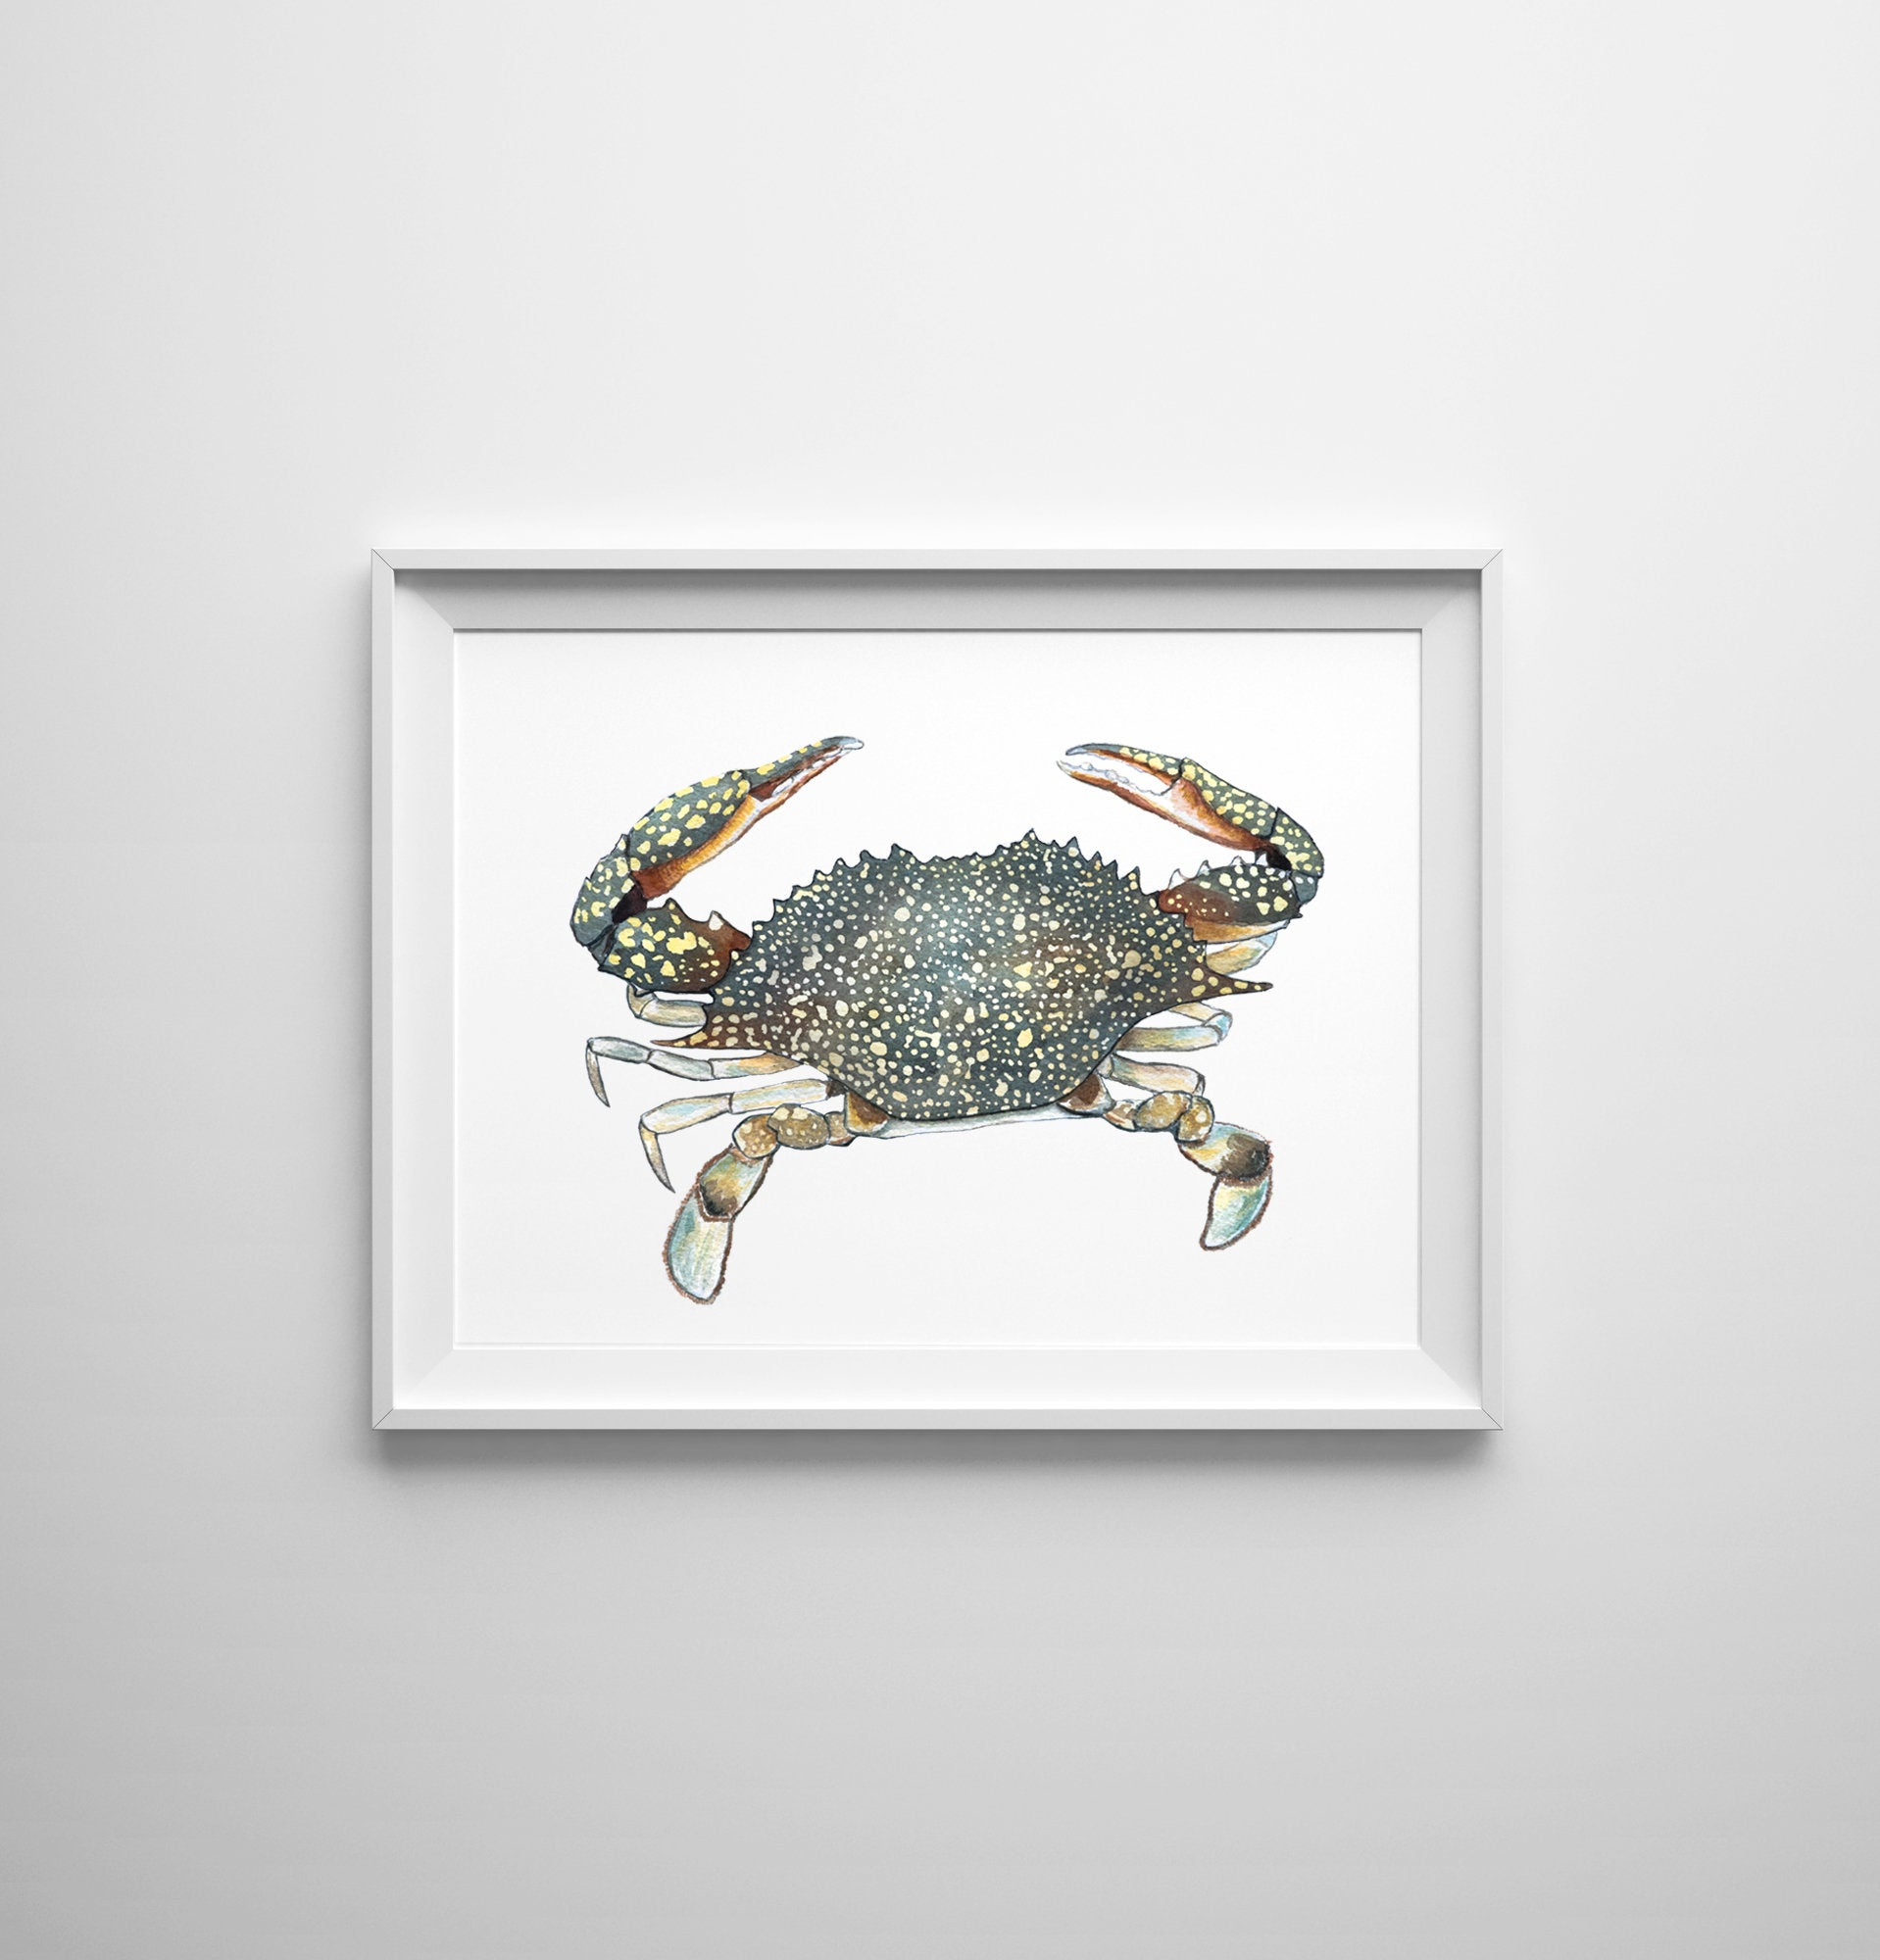 Speckled Swimming Crab by Coastal Artist Alexandra Nicole $32